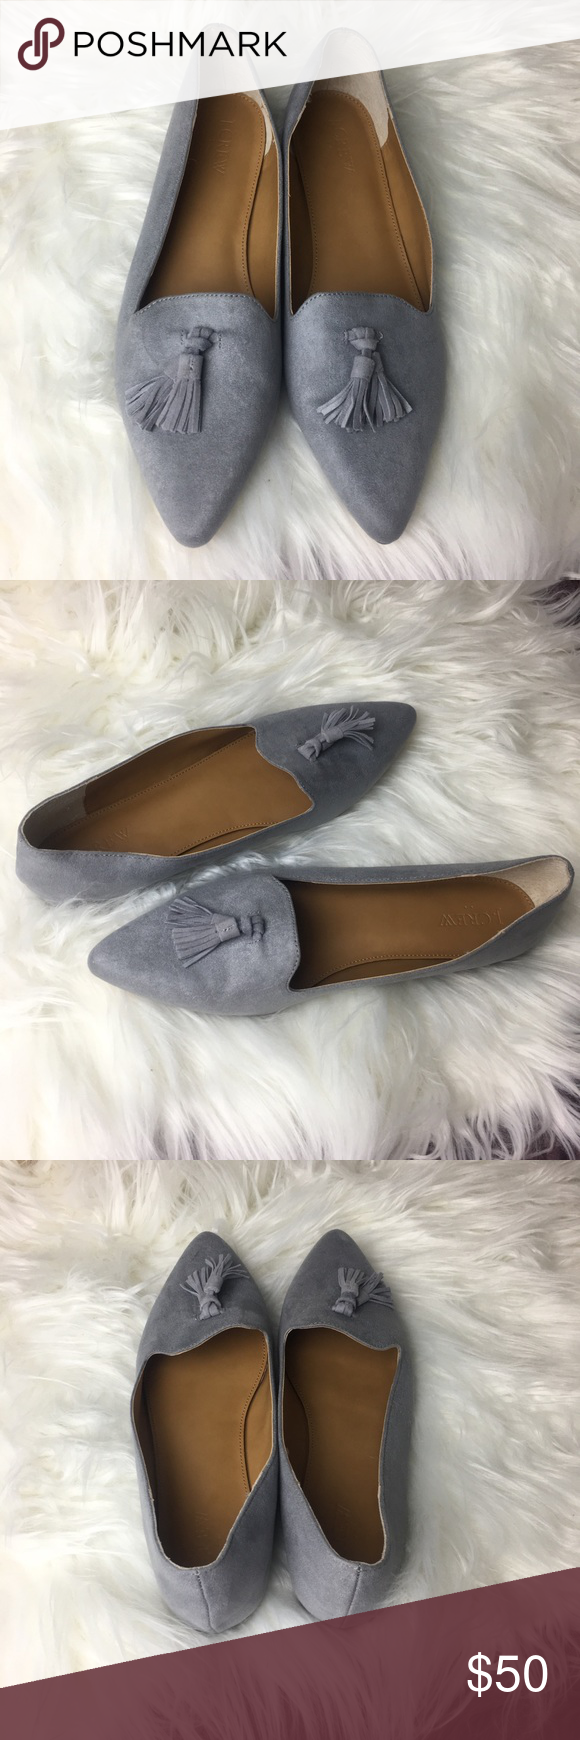 96defa62906 J. Crew Edie Loafers Gray with tassels Size 9.5 J. Crew Edie Loafers Gray  micro suede flats with tassels Size 9.5 Tried on a few times but never worn.